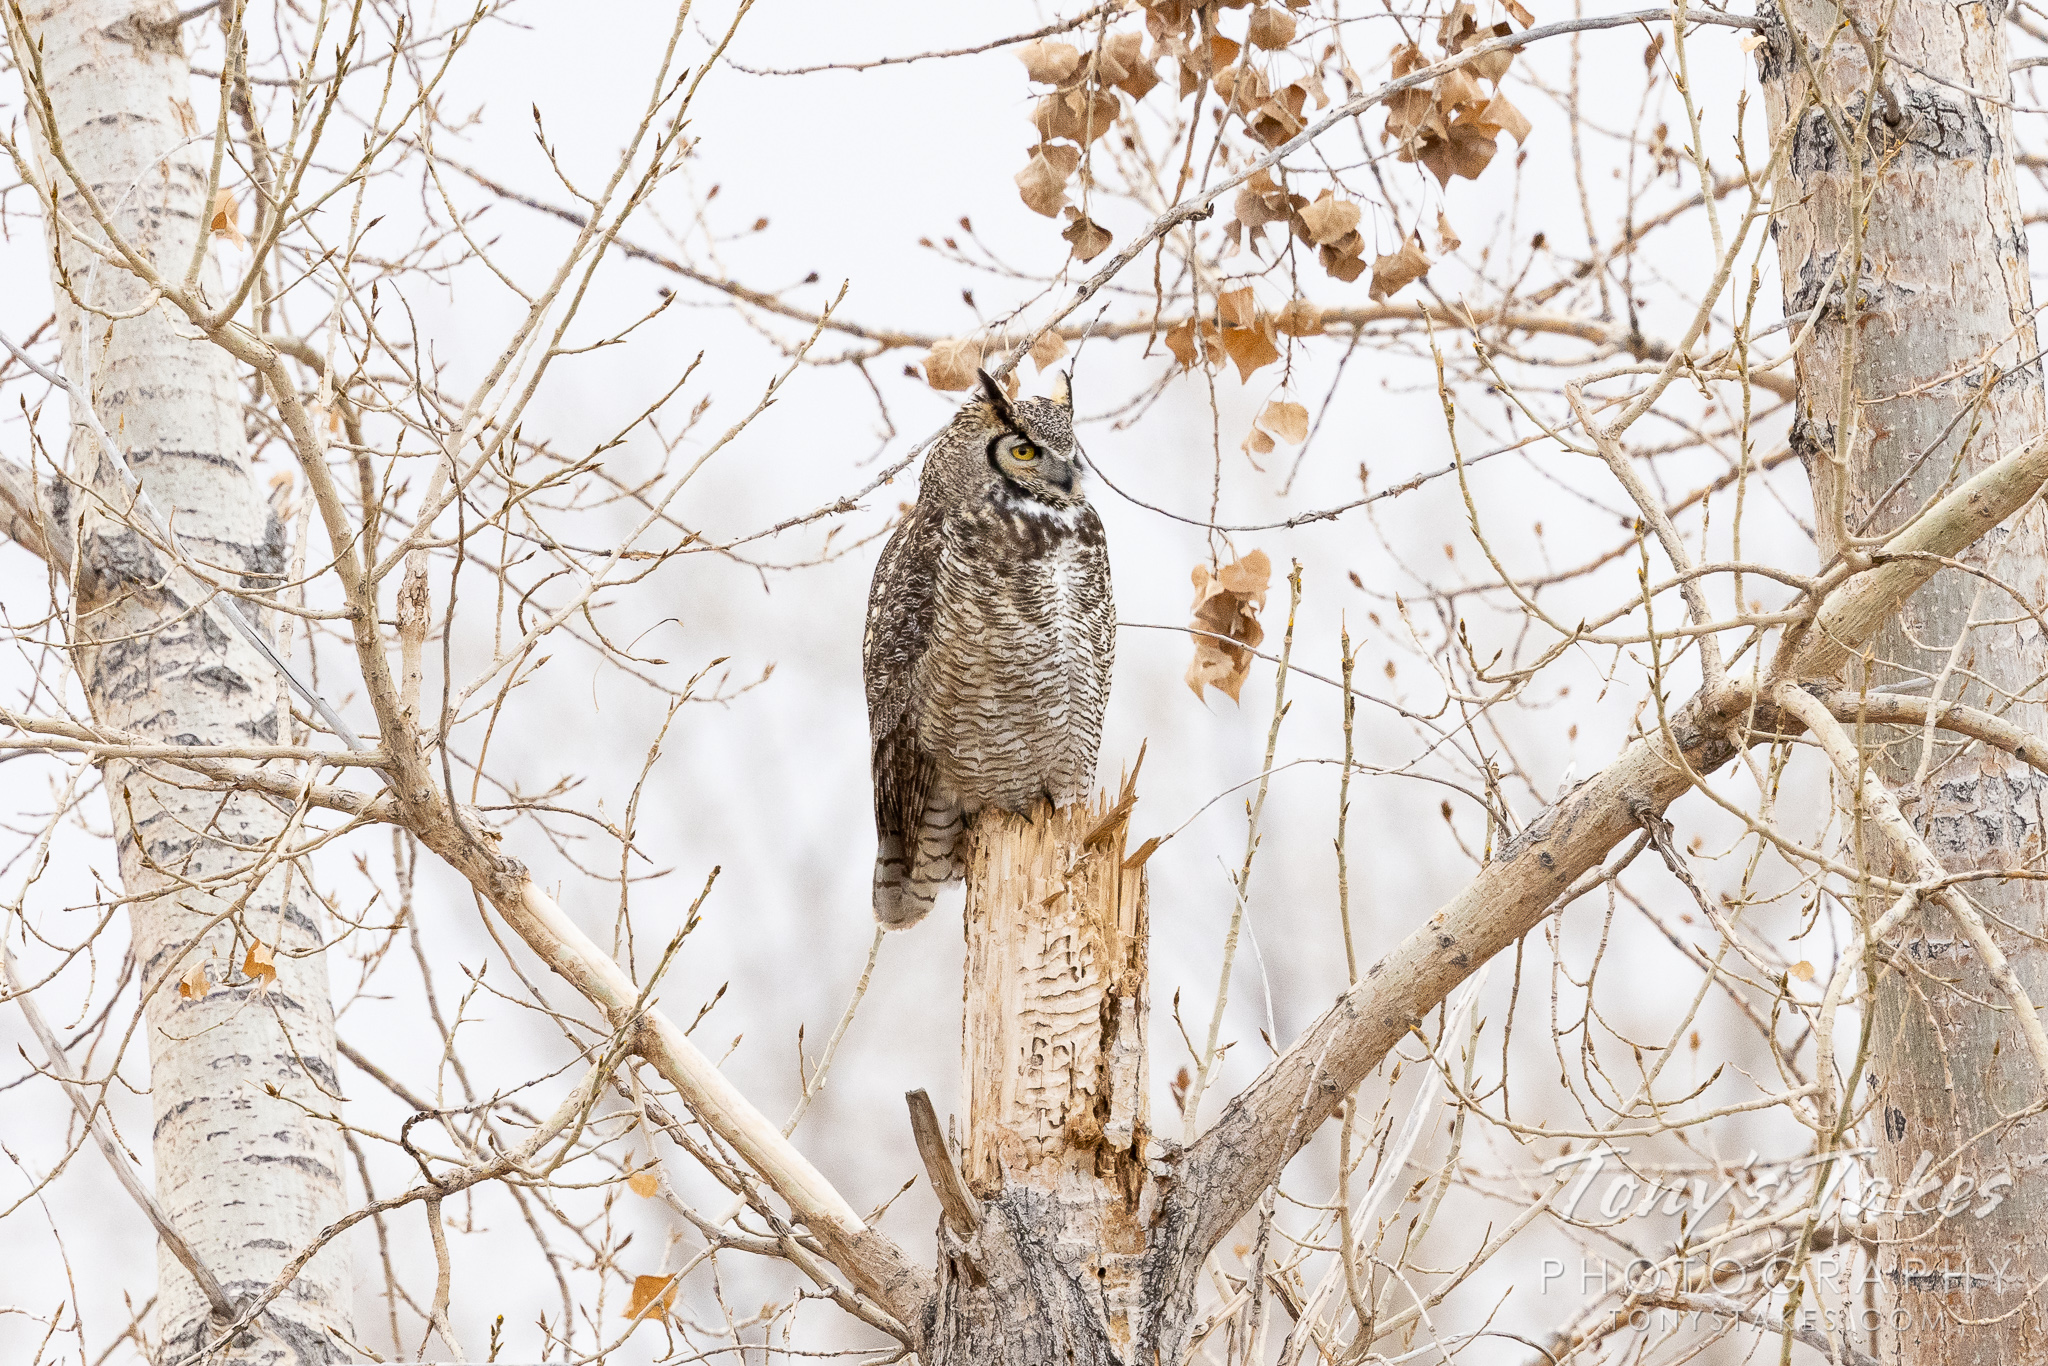 A great horned owl keeps watch on crows that were pestering it. (© Tony's Takes)